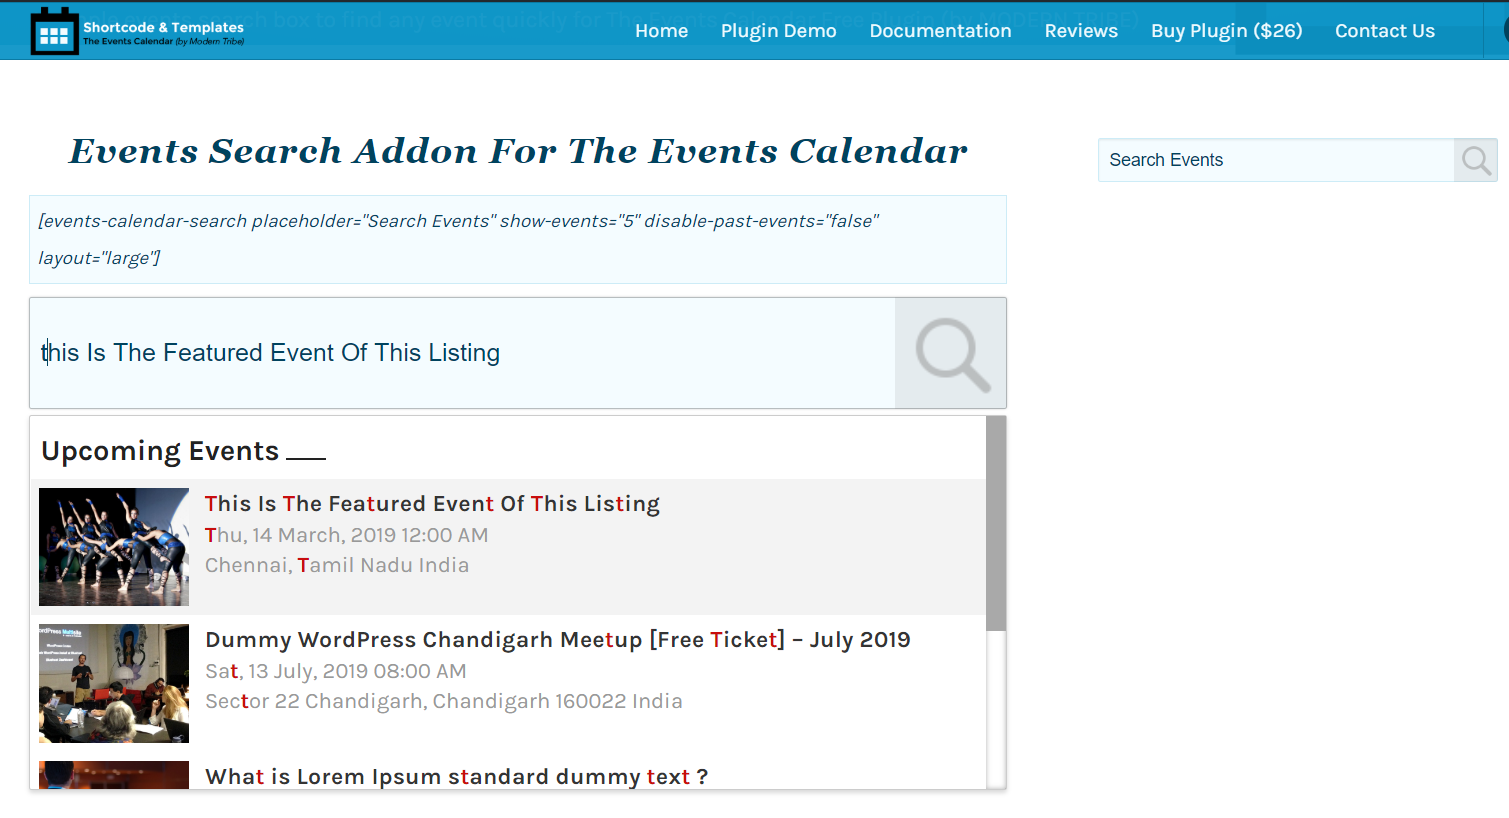 The Events Calendar Search Addon Shortcode and Sidebar Widget View.